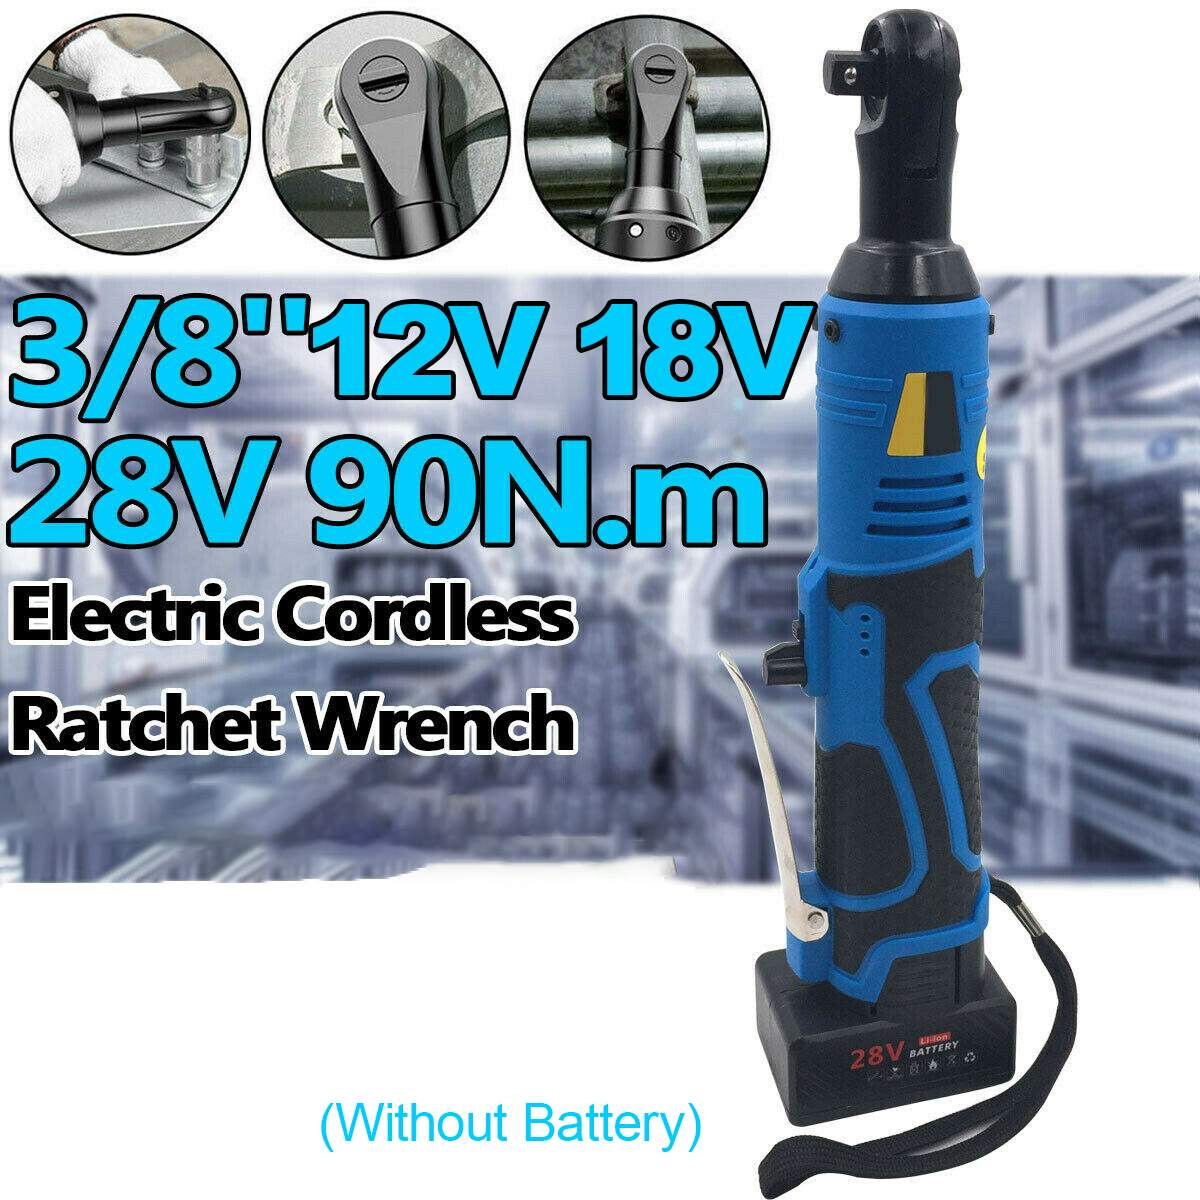 Electric Cordless Ratchet Wrench Right Angle Tool Ratchet 90 Degree Right Angle Large Torque Capacity Wrench 12V/18V/28V